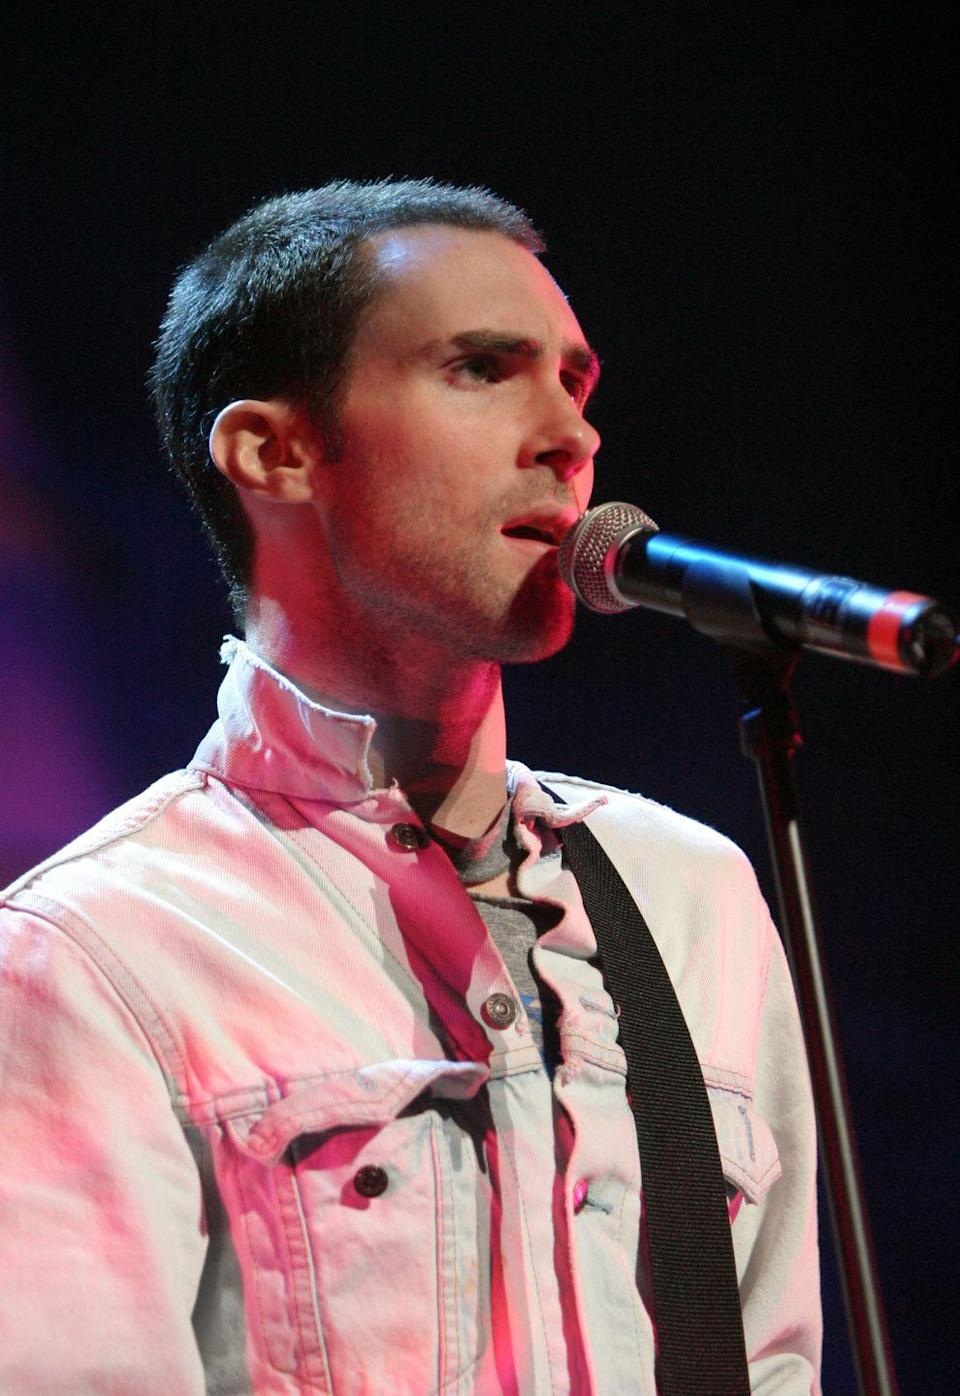 """<p><a href=""""https://www.goodhousekeeping.com/life/entertainment/a27701774/adam-levine-the-voice-exit-response/"""" rel=""""nofollow noopener"""" target=""""_blank"""" data-ylk=""""slk:Adam Levine"""" class=""""link rapid-noclick-resp"""">Adam Levine</a> has said that almost every song on the 2002 album <em>Songs About Jane</em> was about a former ex-girlfriend ― except this one, which is about the band's frustration with their label. """"It was the 11th hour, and the label wanted more songs,"""" he <a href=""""http://www.mtv.com/news/1457217/maroon-5-aspire-to-inspire-sexuality-crying/"""" rel=""""nofollow noopener"""" target=""""_blank"""" data-ylk=""""slk:told MTV News"""" class=""""link rapid-noclick-resp"""">told MTV News</a>. """"It was the last crack. I was just pissed. I wanted to make a record and the label was applying a lot of pressure, but I'm glad they did.""""</p>"""